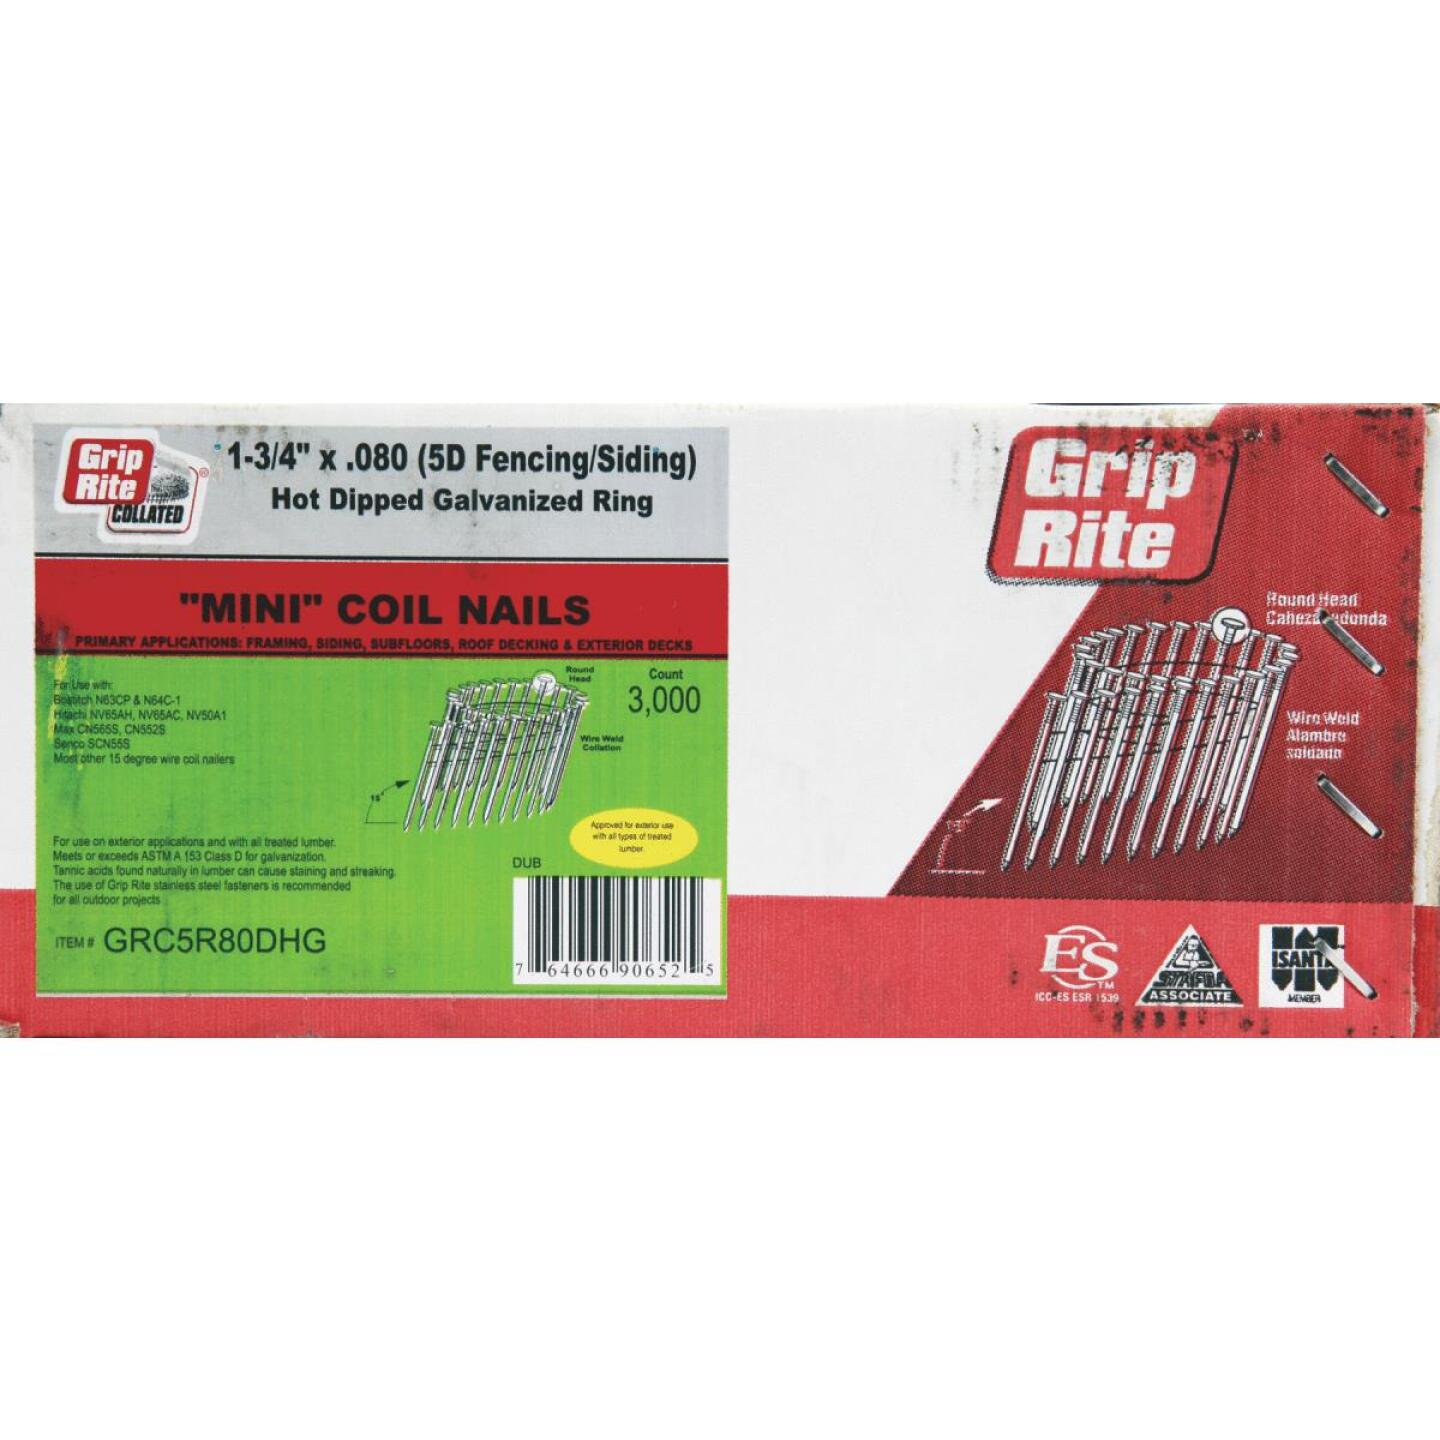 Grip-Rite 15 Degree Wire Weld Hot-Dipped Galvanized Coil Siding Nail, 1-3/4 In. x .080 In. (3000 Ct.) Image 1